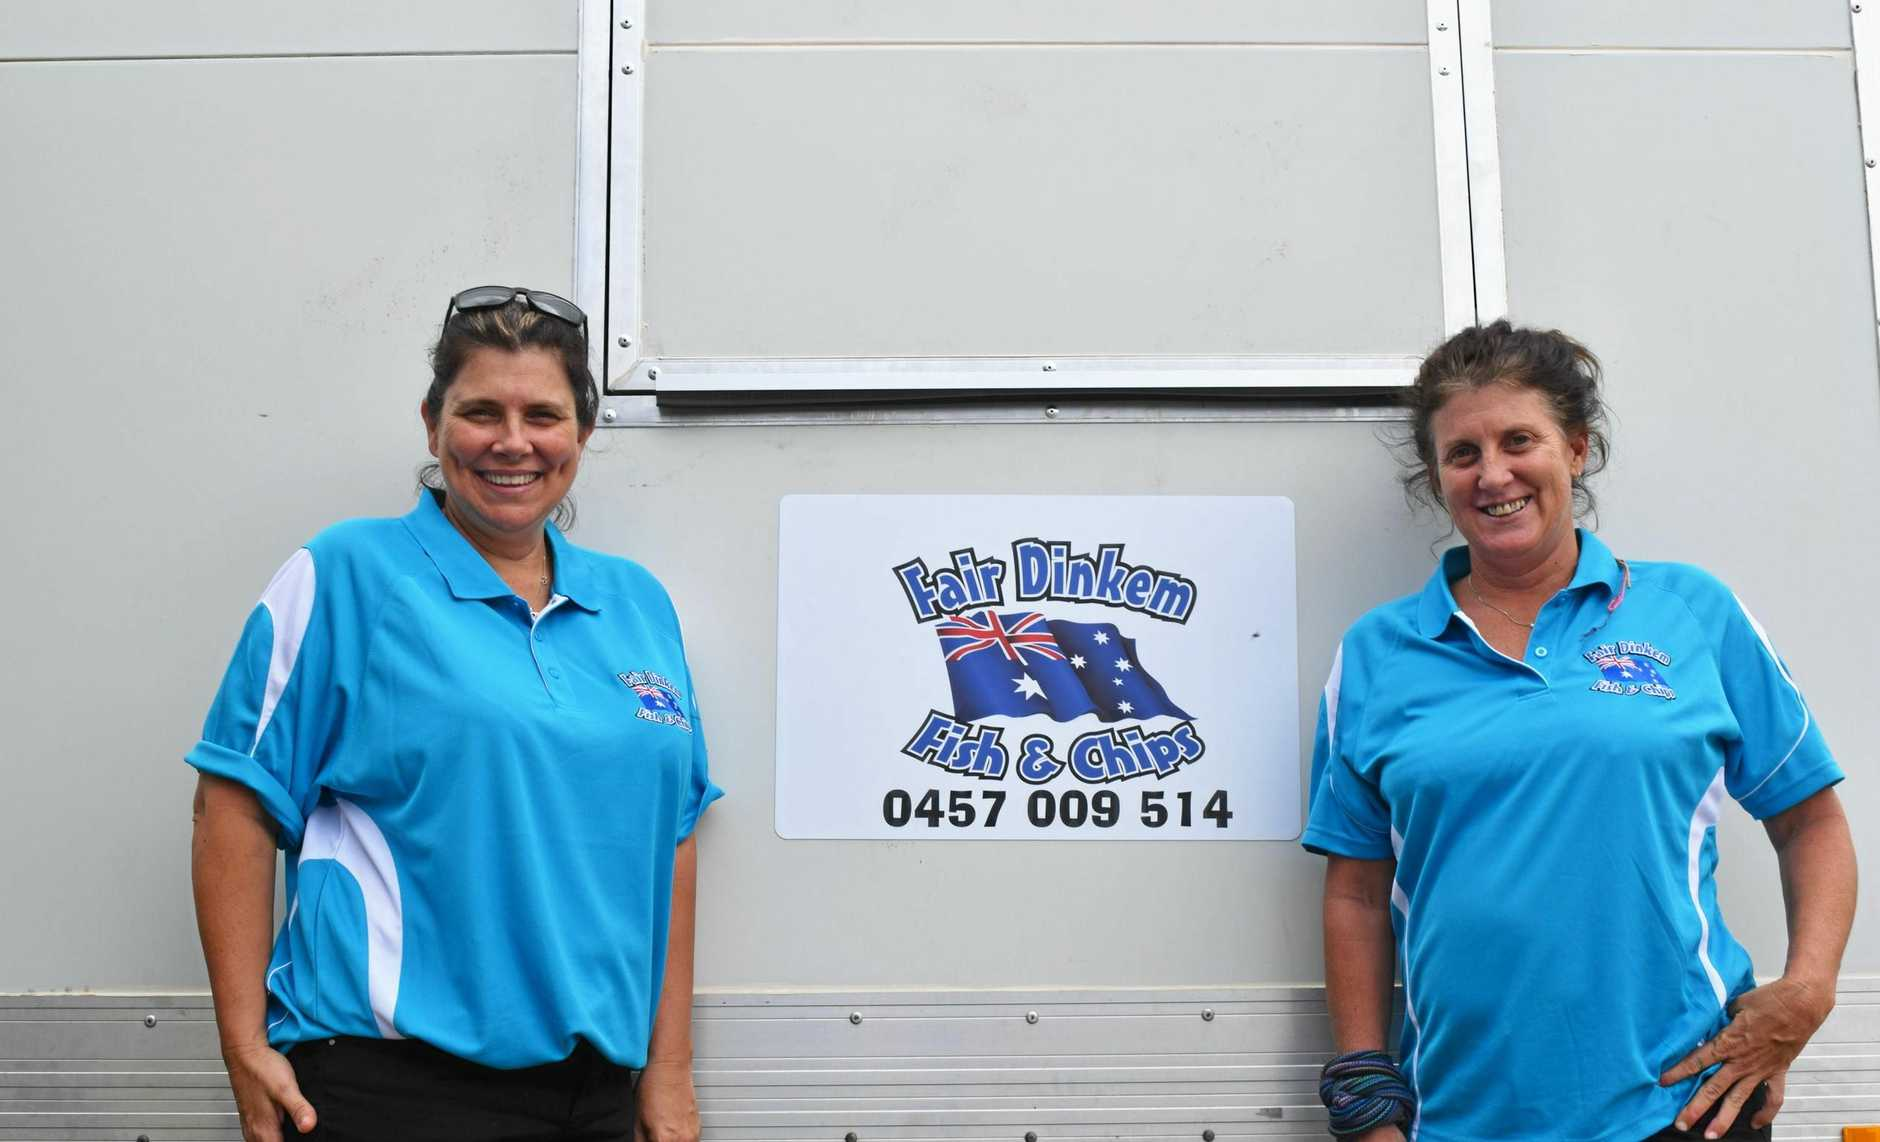 ABOVE, GONE TRUCKIN: Kellie Anderson and Stacey Hober in-front of their new fish and chip food truck.